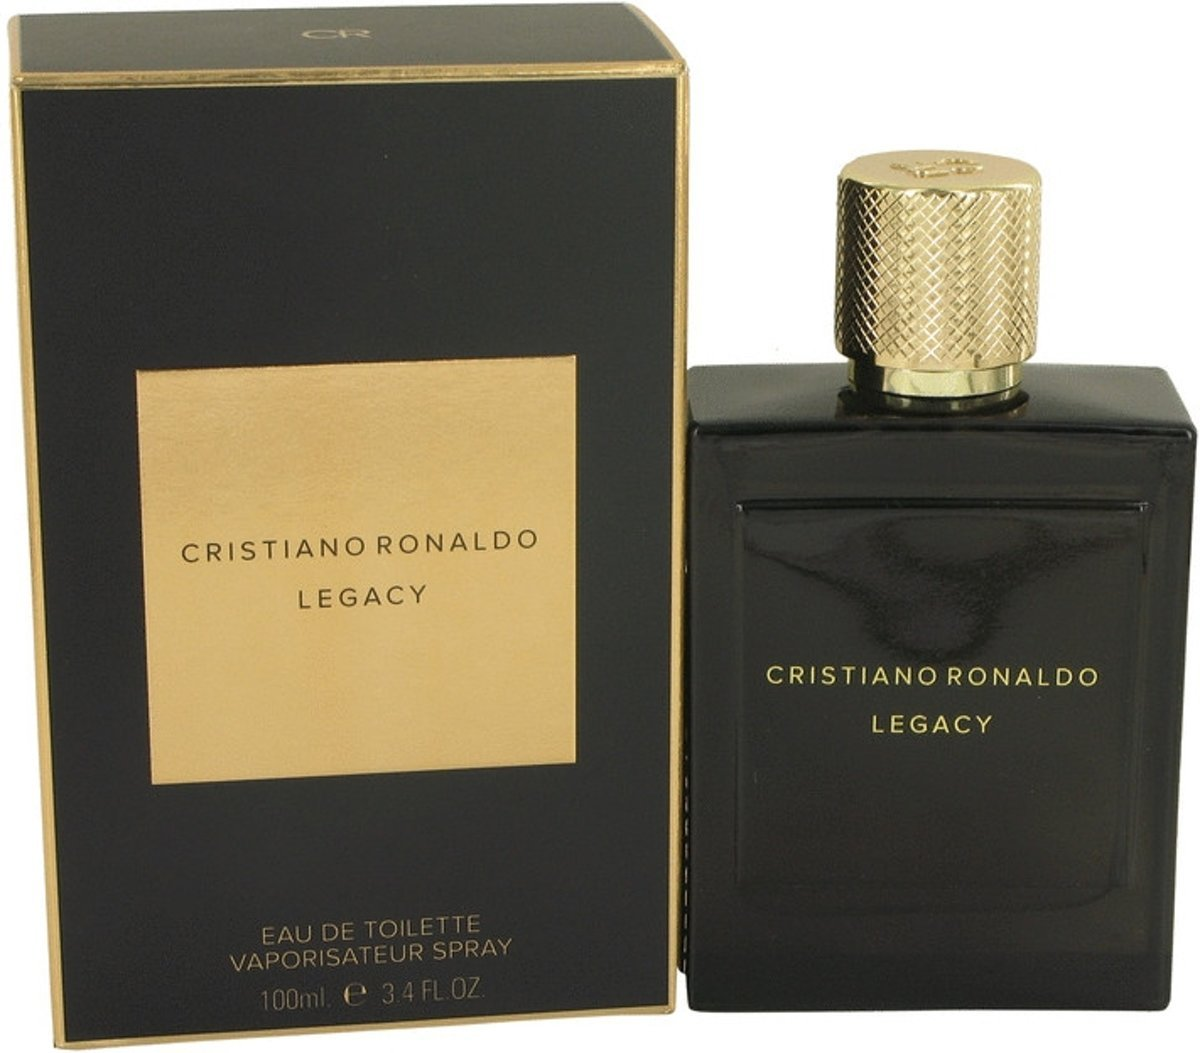 Cristiano Ronaldo Legacy Edt Spray 50 ml